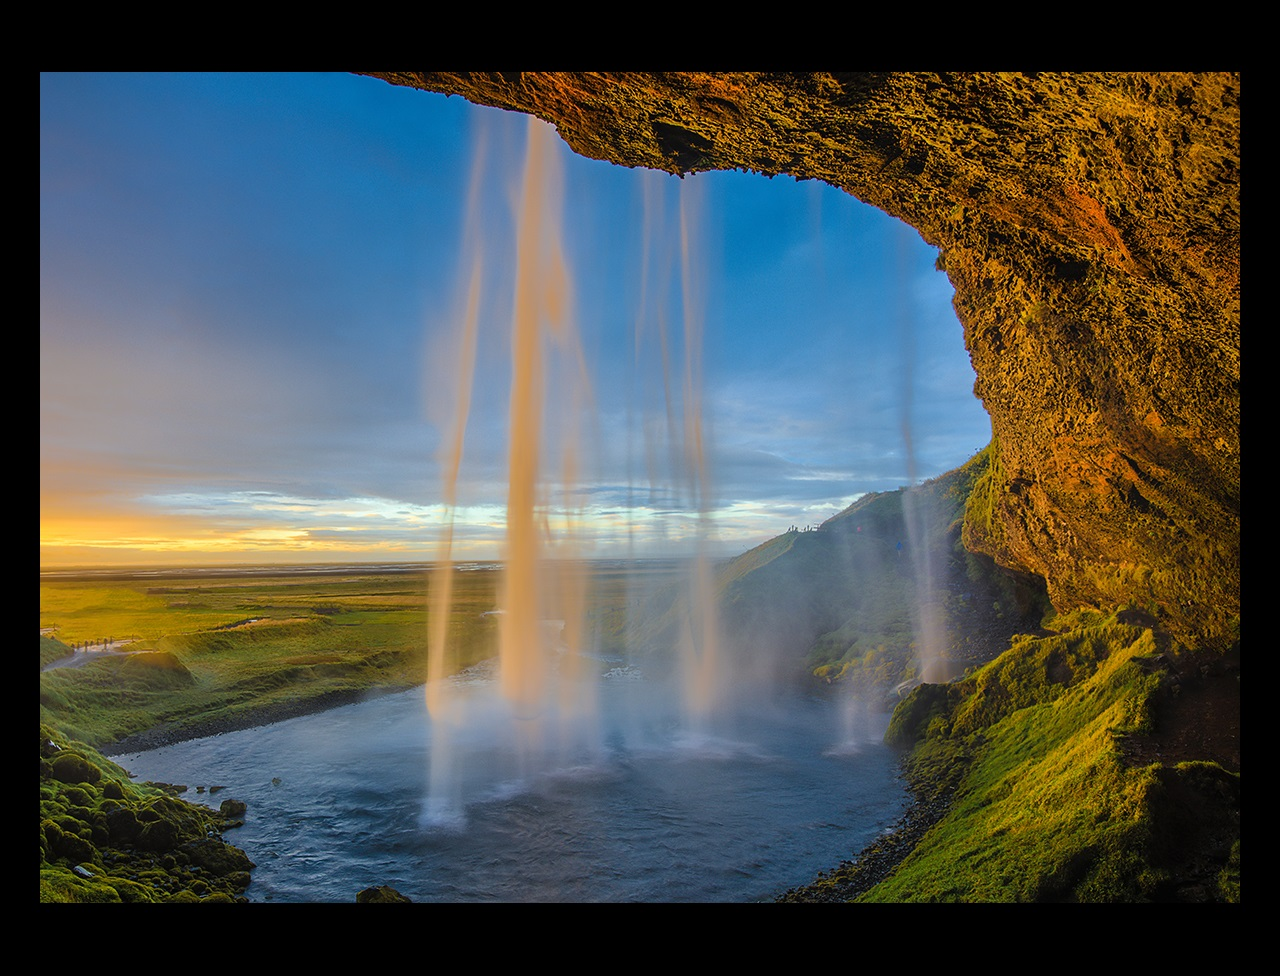 View of waterfall from inside a cave with sunlight